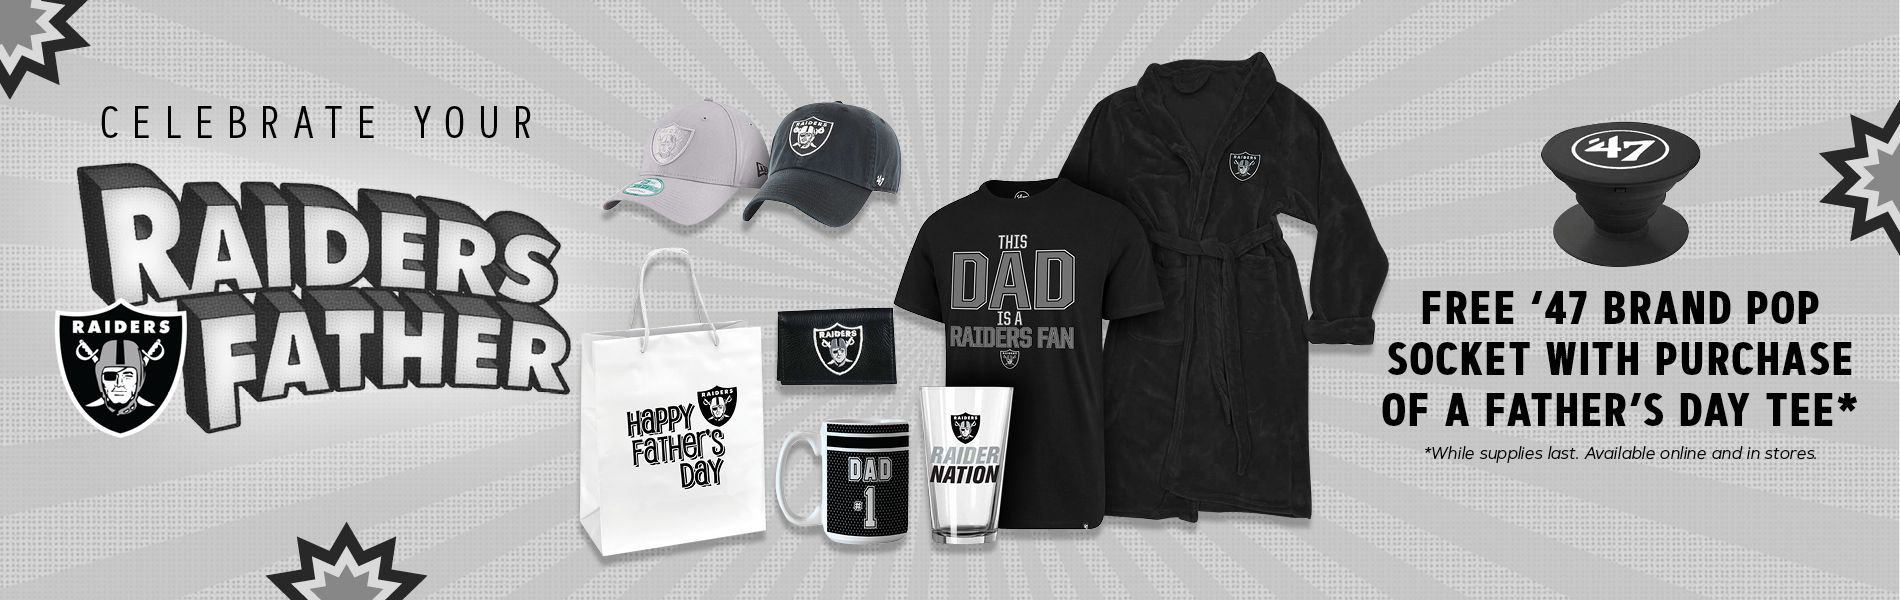 0305721673d The Raider Image - The Official Store for Oakland Raiders Merchandise